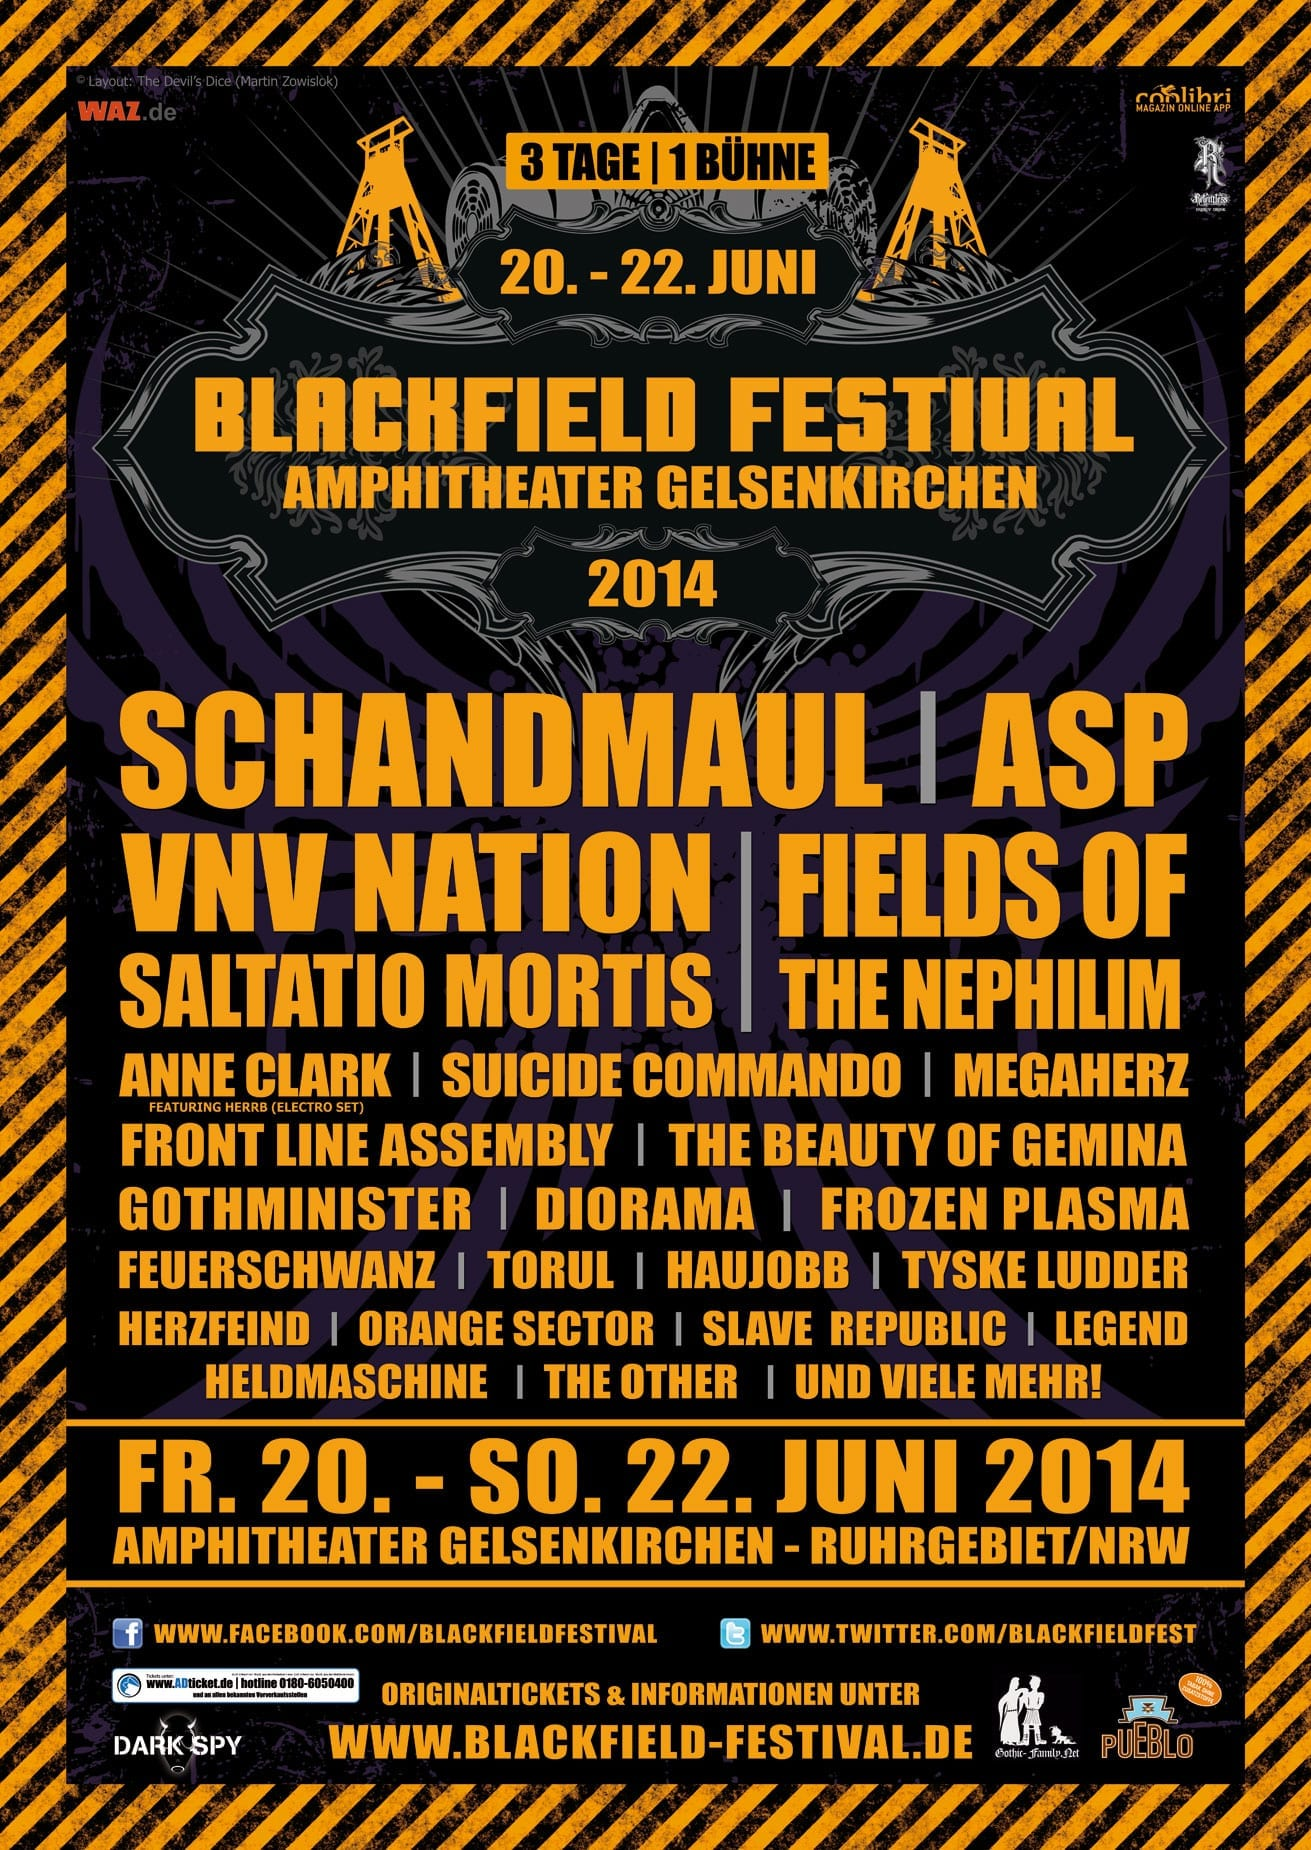 official Flyer: Blackfield Festival 2014